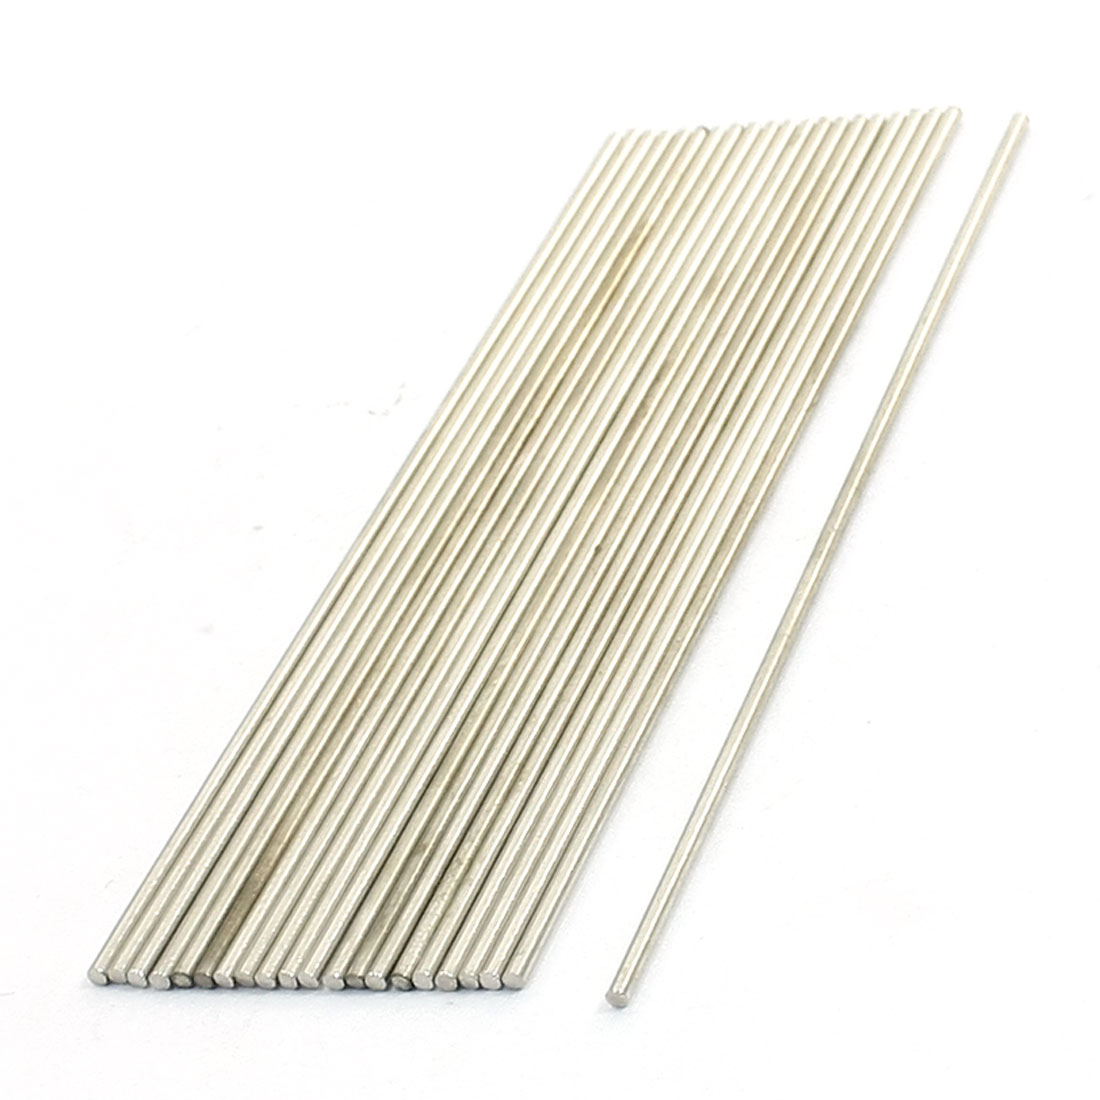 RC Car Axle 100mm Long 1.5mm Dia Stainless Steel Round Bar 20pcs